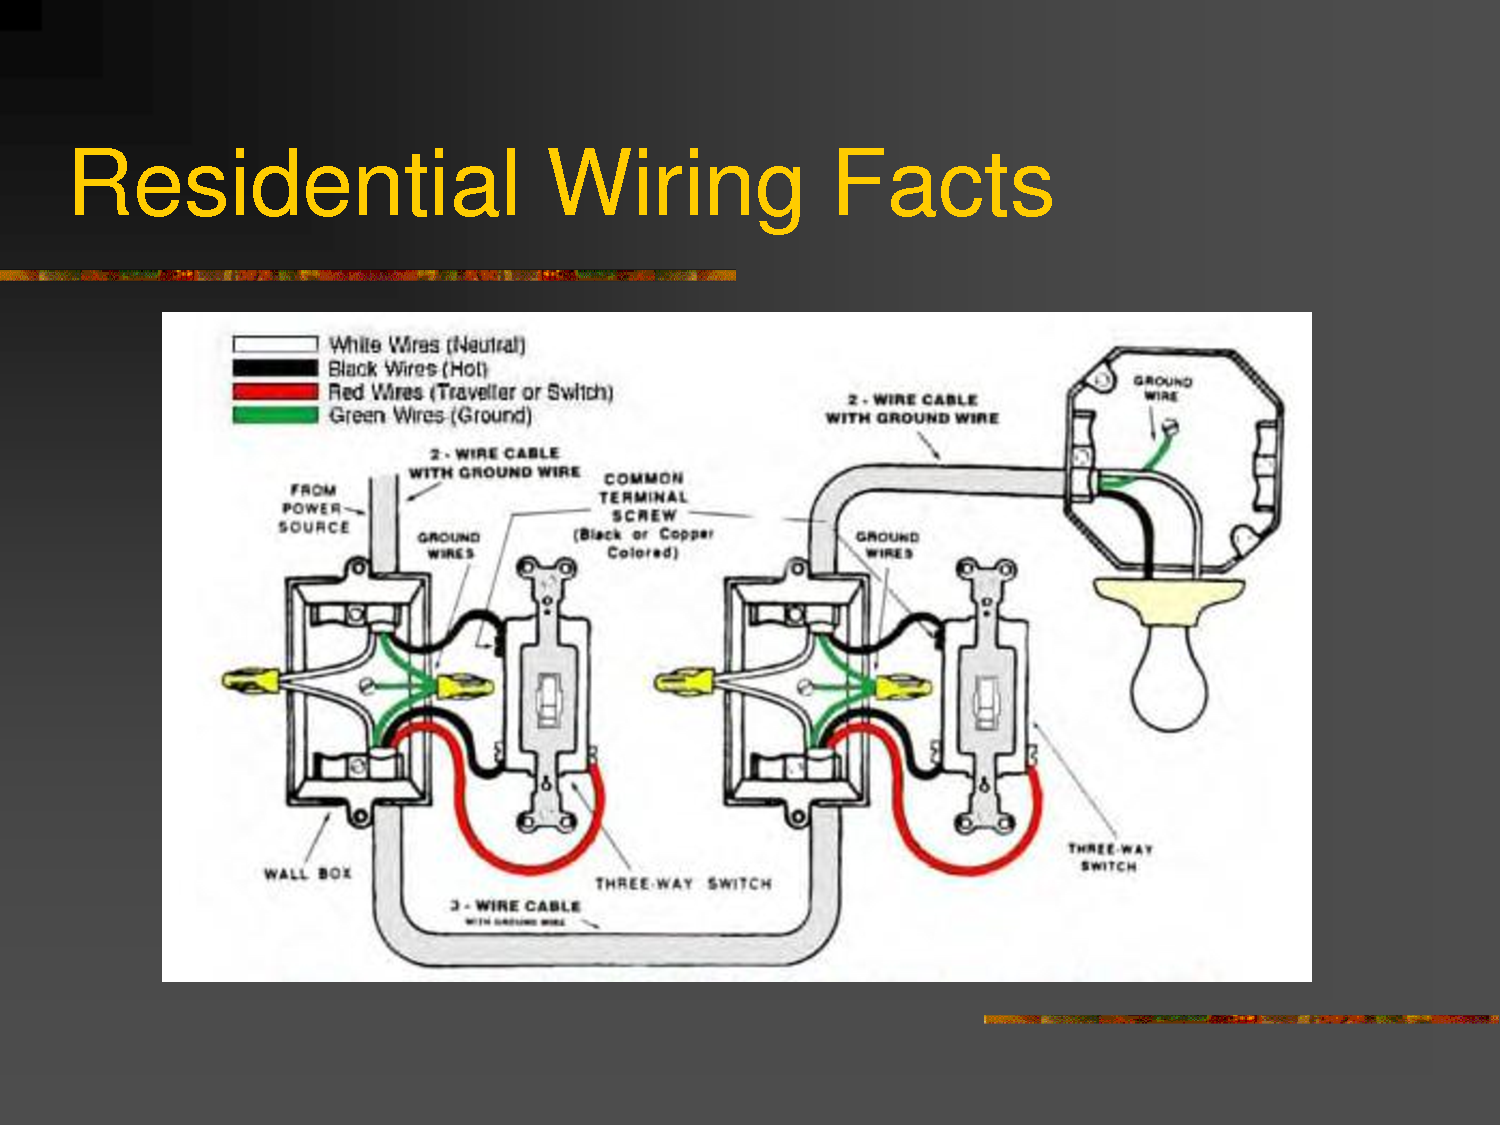 way switch install · GitBook (Legacy). 4 Best Images of Residential Wiring  Diagrams - House Electrical .